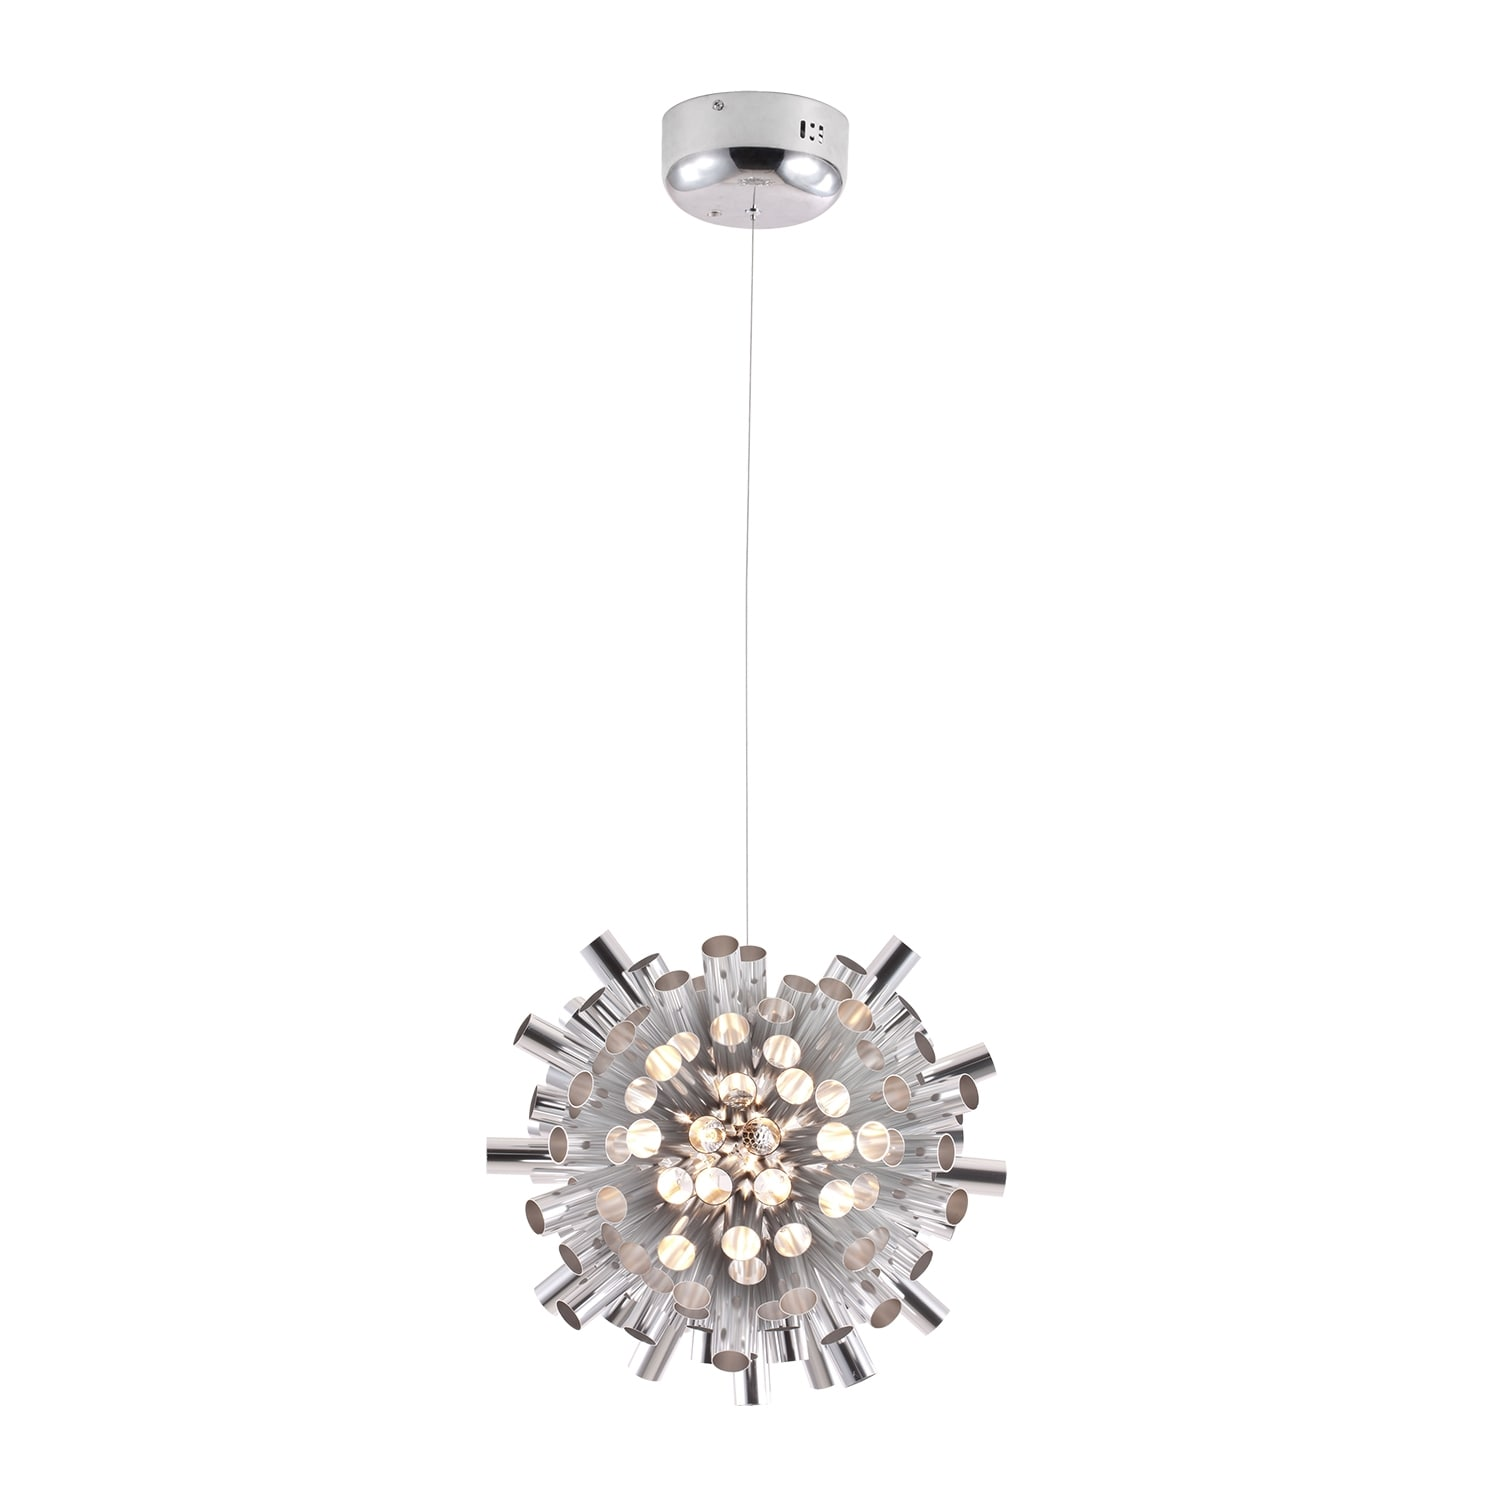 Home Accessories - Extravagance Chandelier